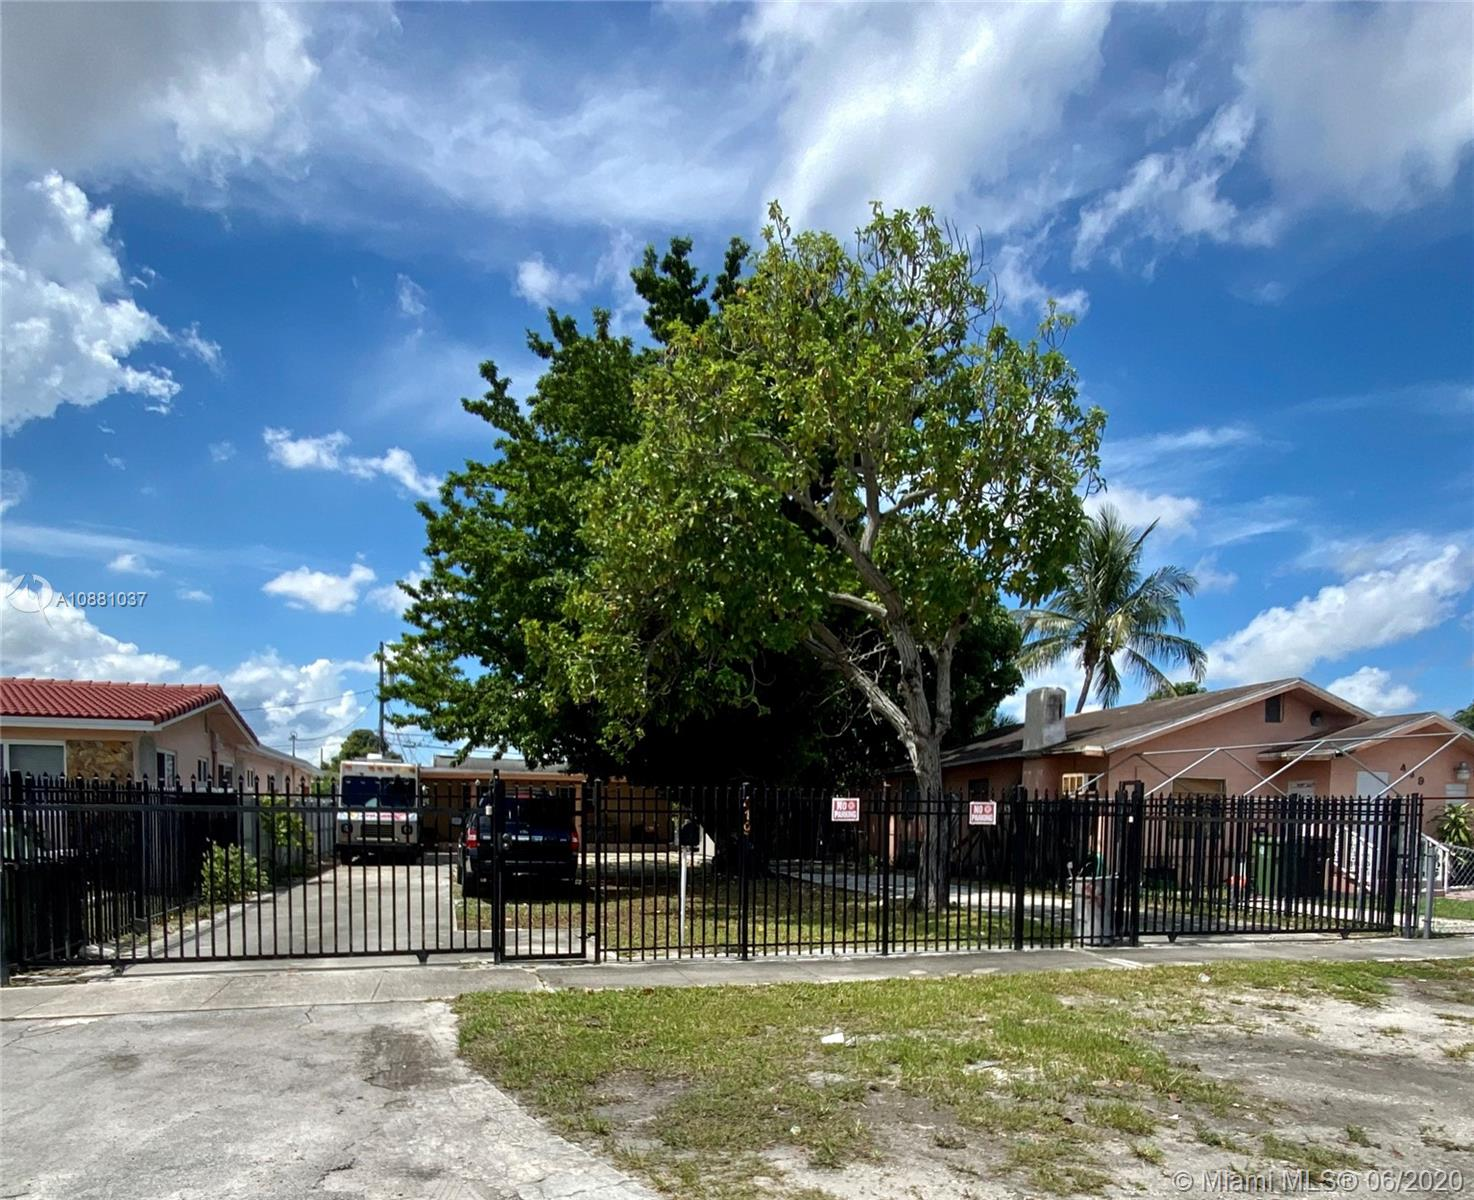 419 SE 3rd St  For Sale A10881037, FL